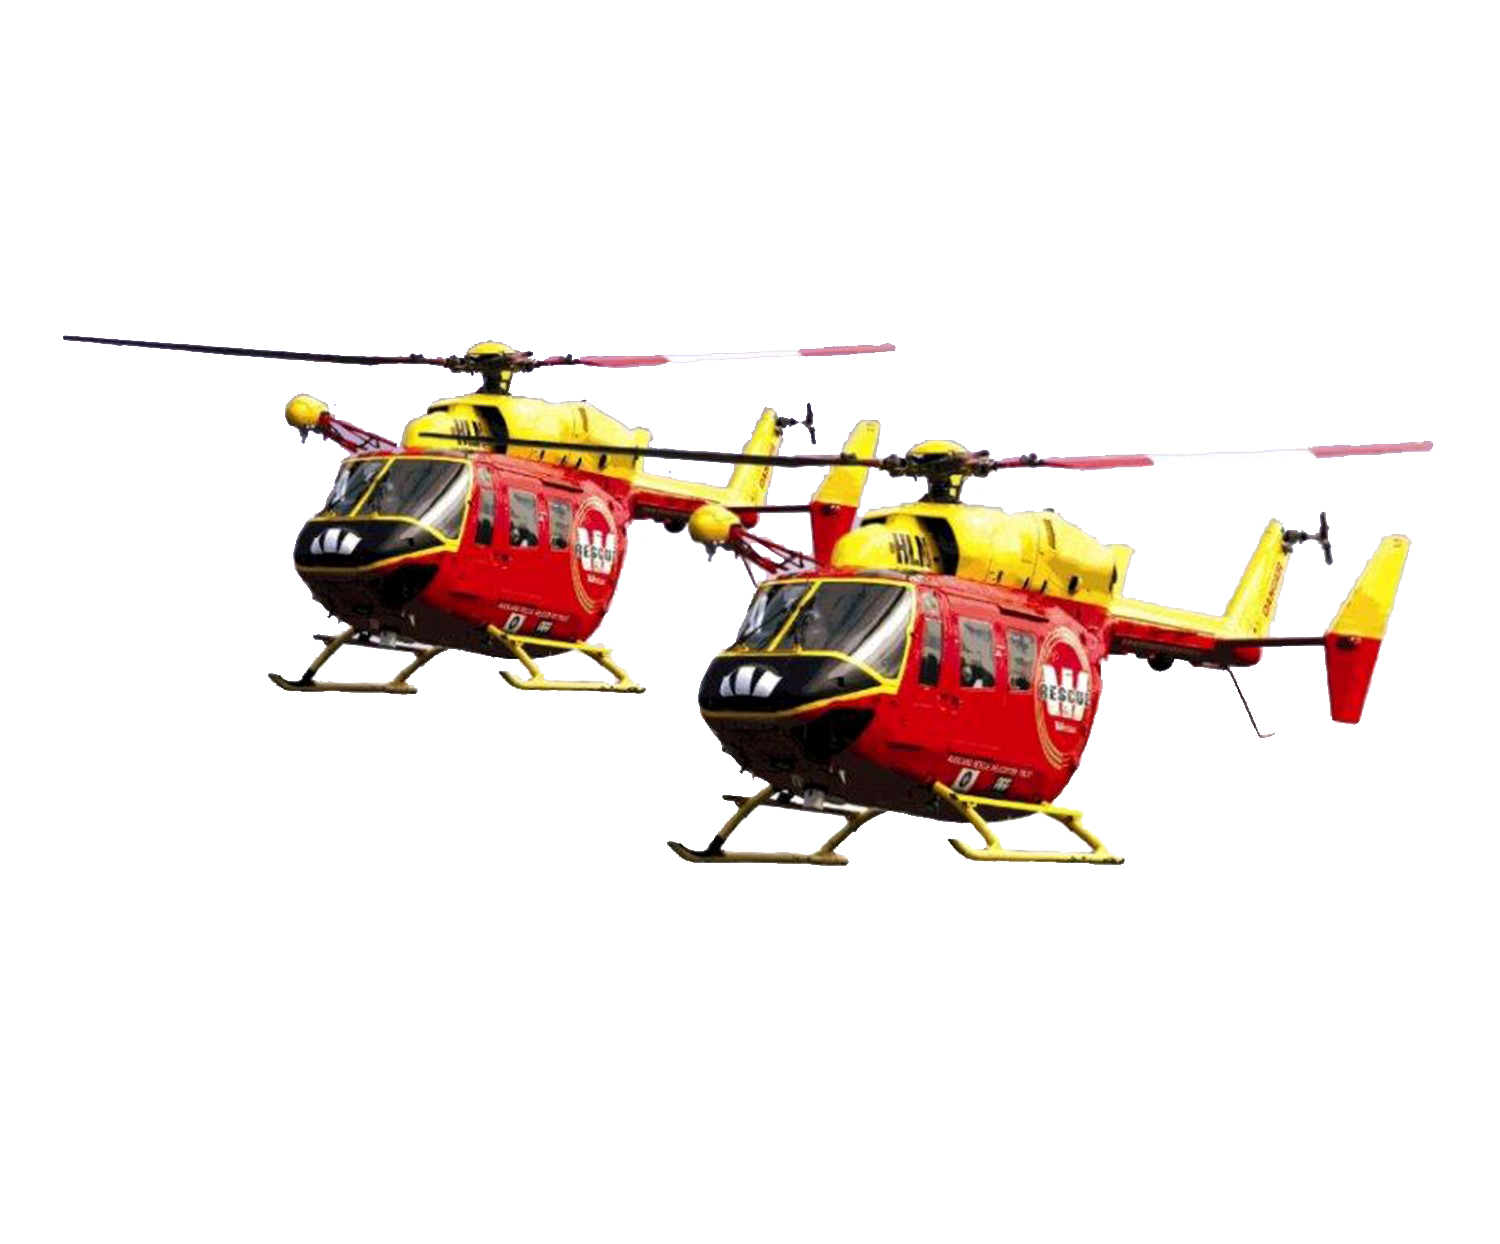 auckland-rescue-helicopters